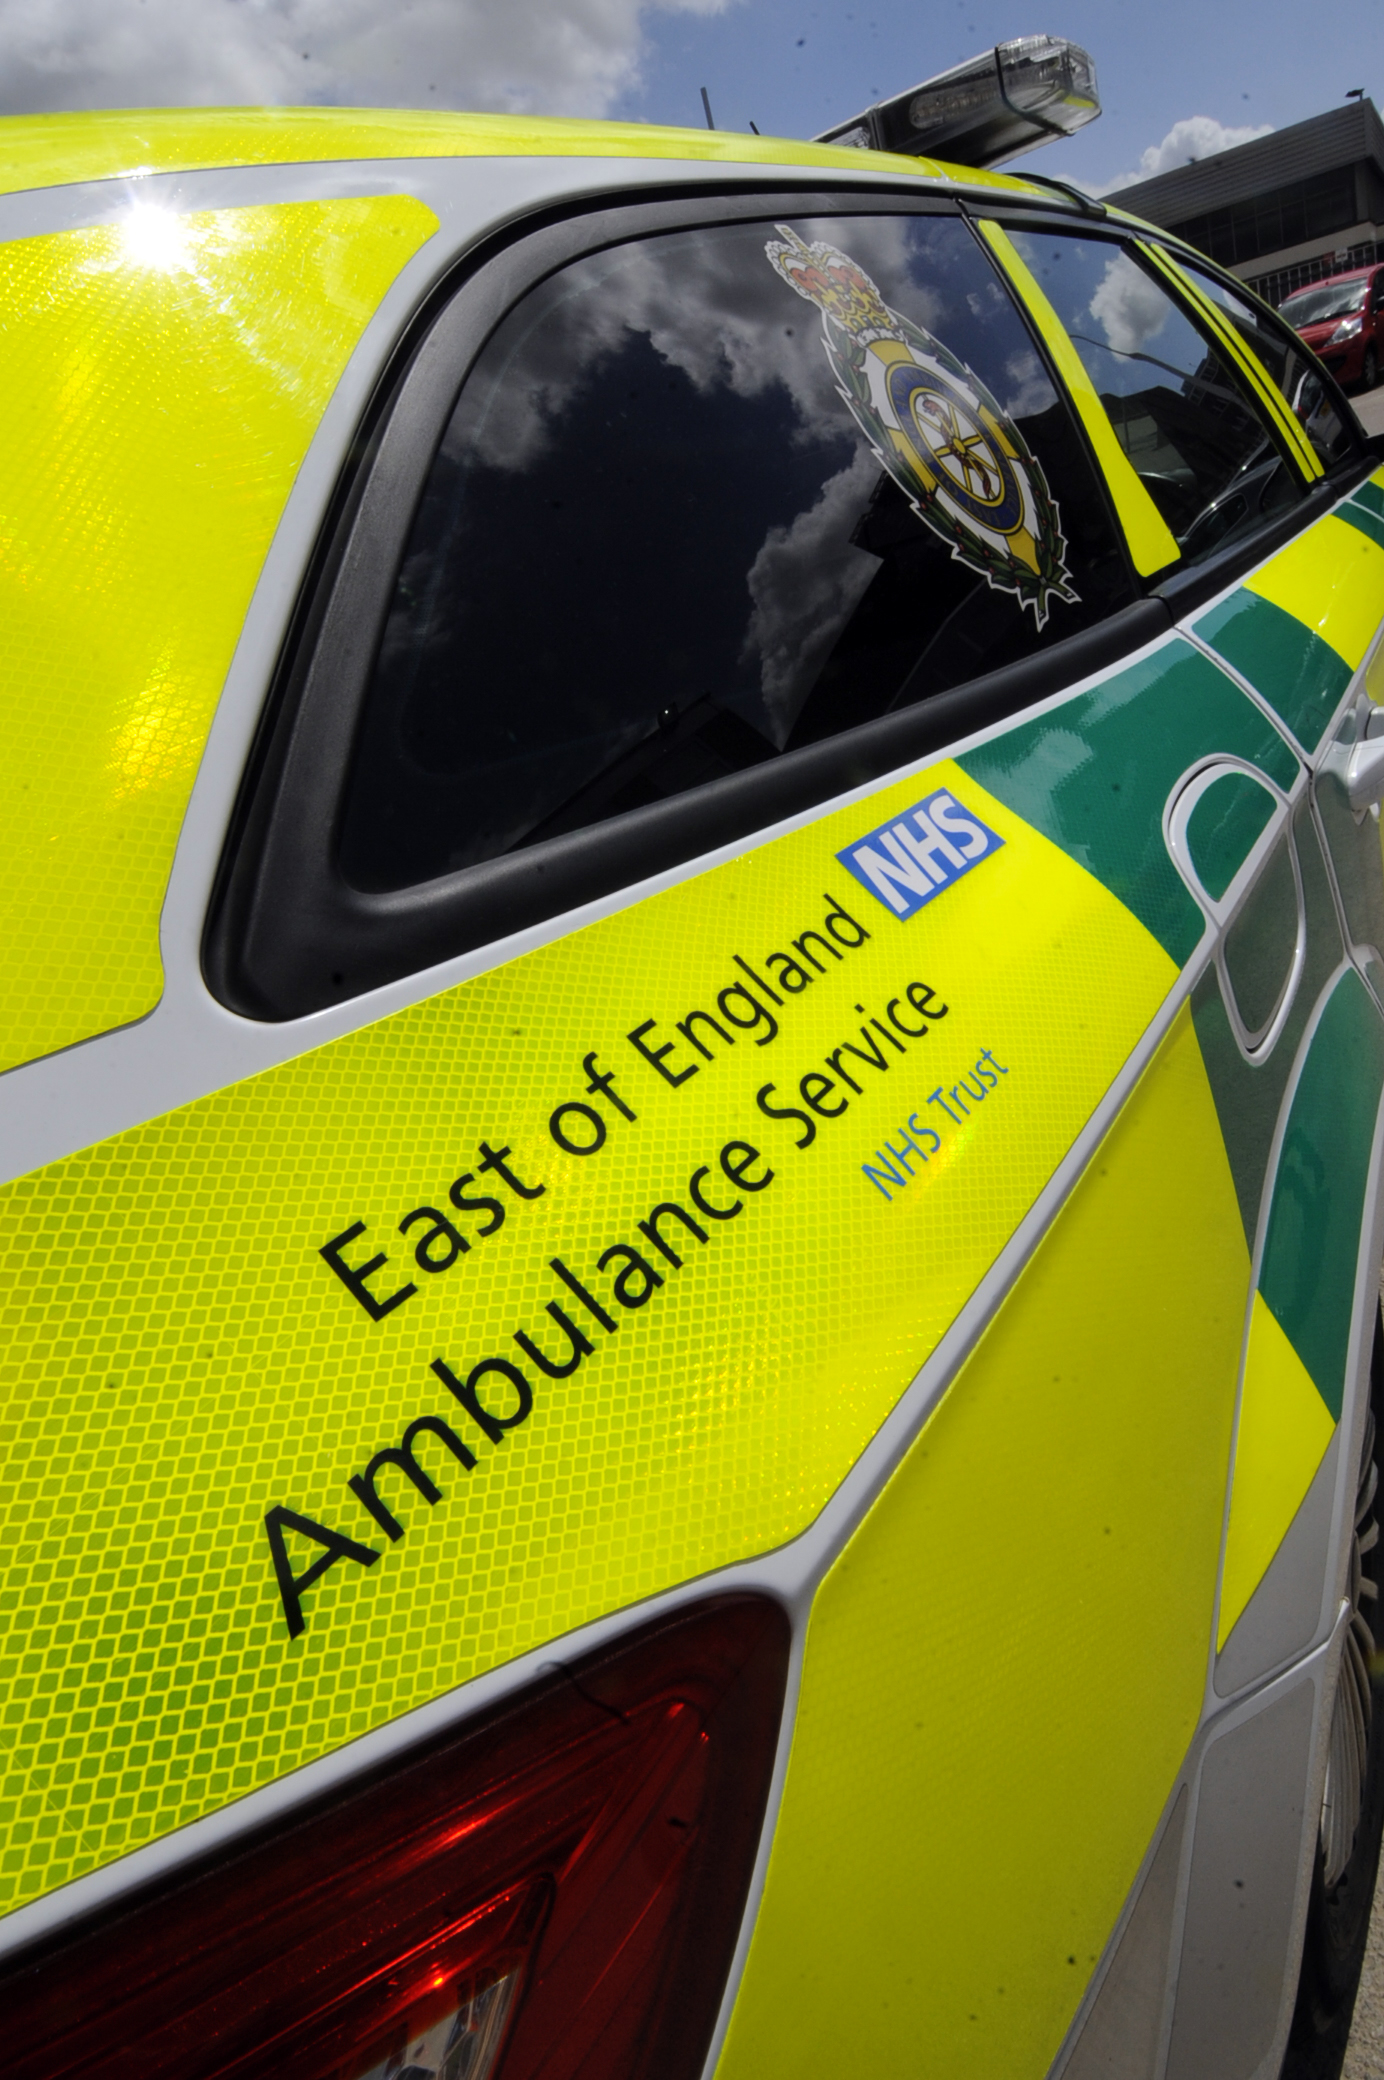 Ambulance staff must respond faster: Care Quality Commission review of East of England Ambulance Service